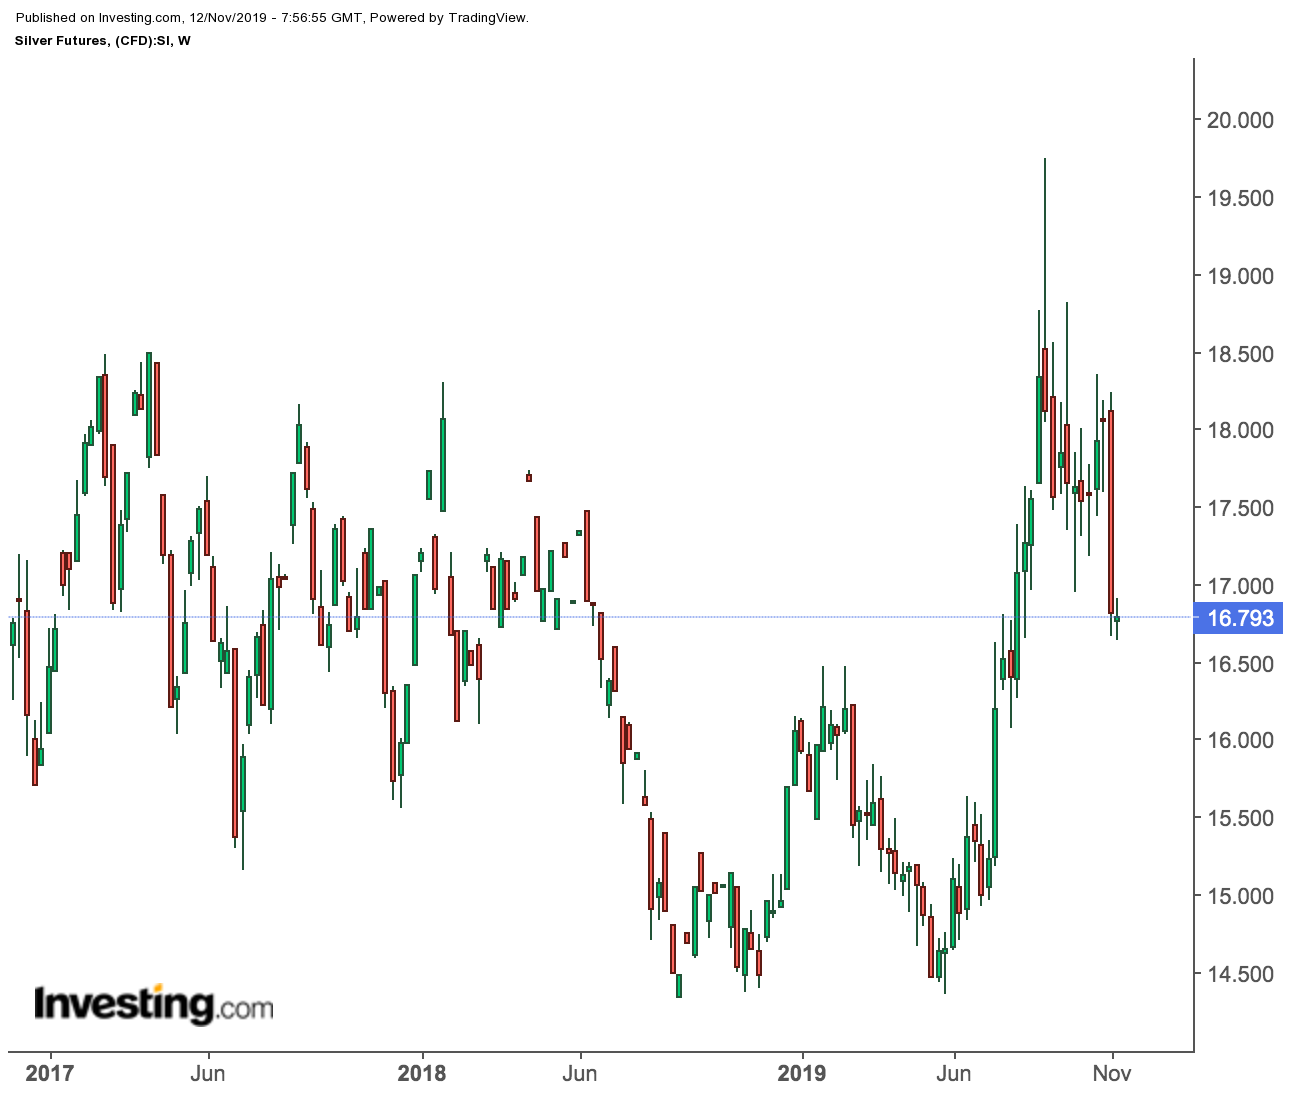 Silver Futures Weekly Price Chart